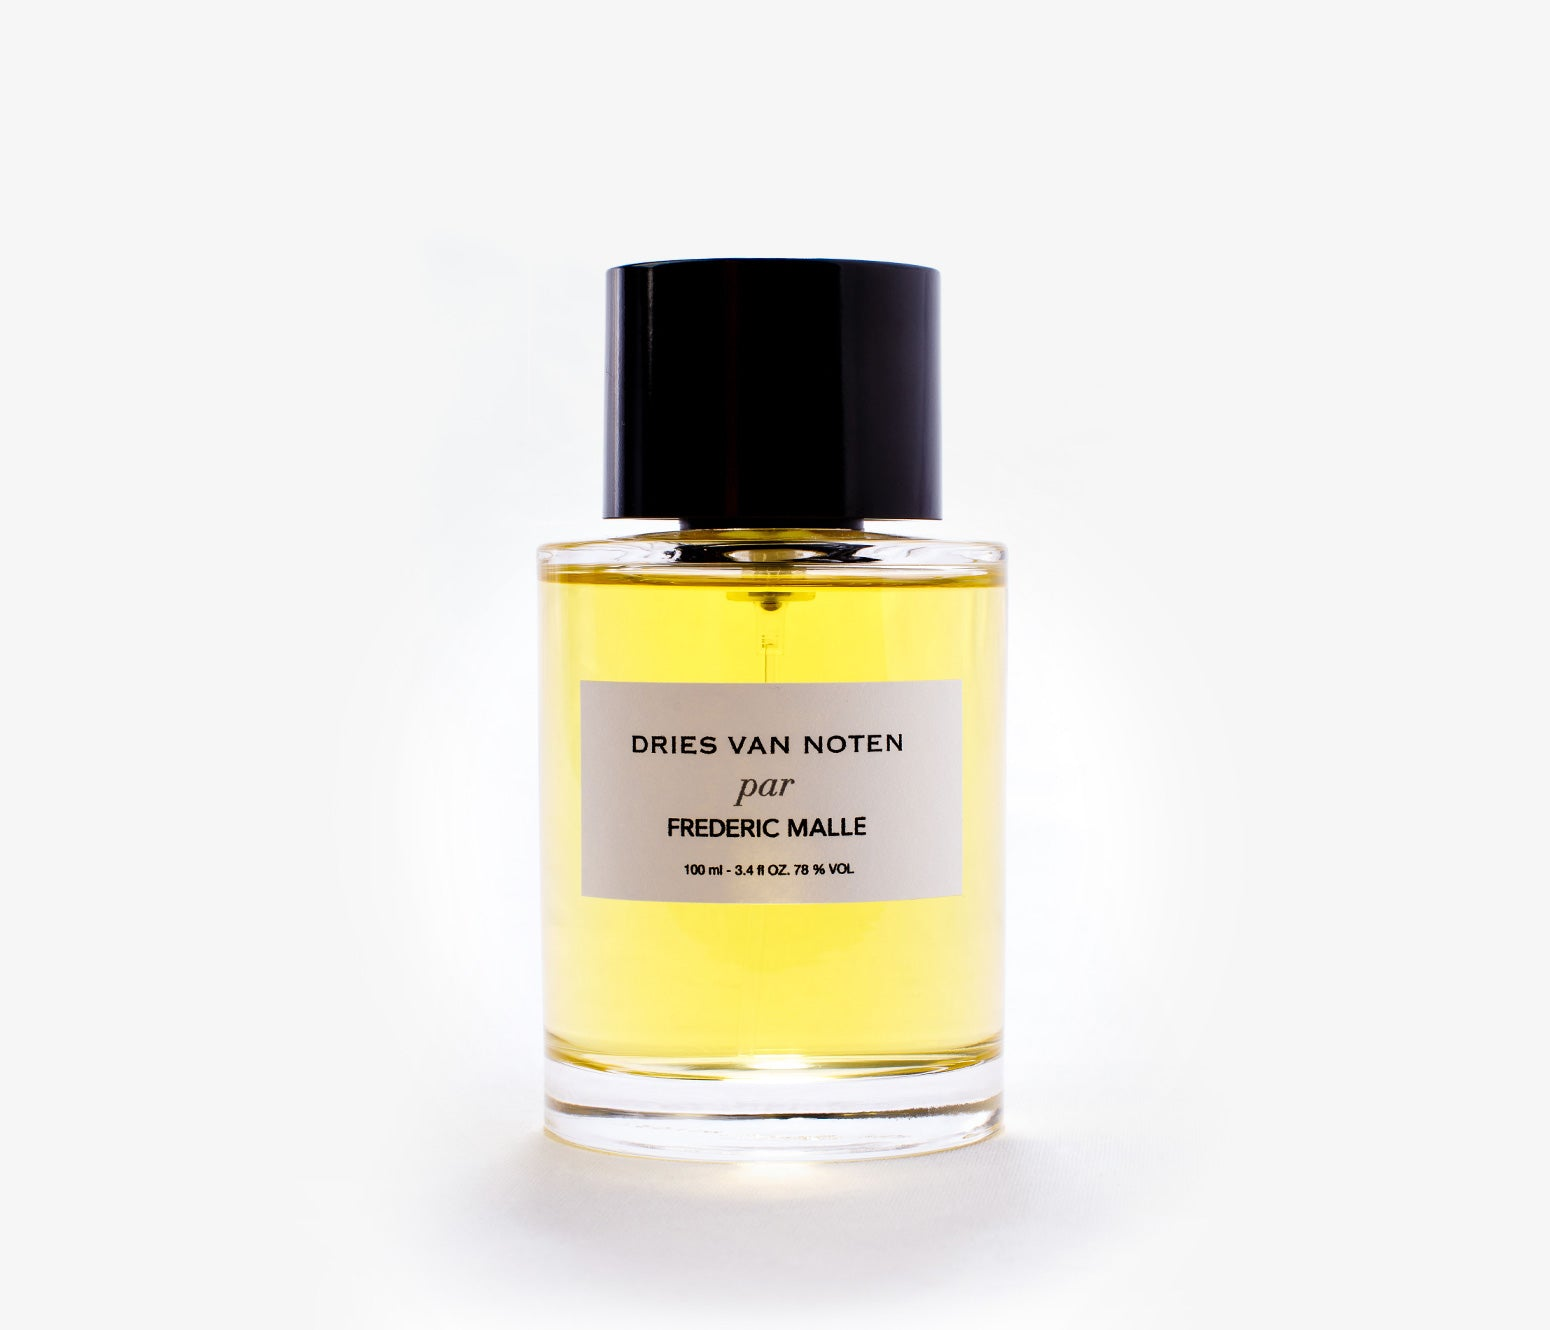 Frederic Malle - Dries Van Noten - 10ml - WWL001 - product image - Fragrance - Les Senteurs